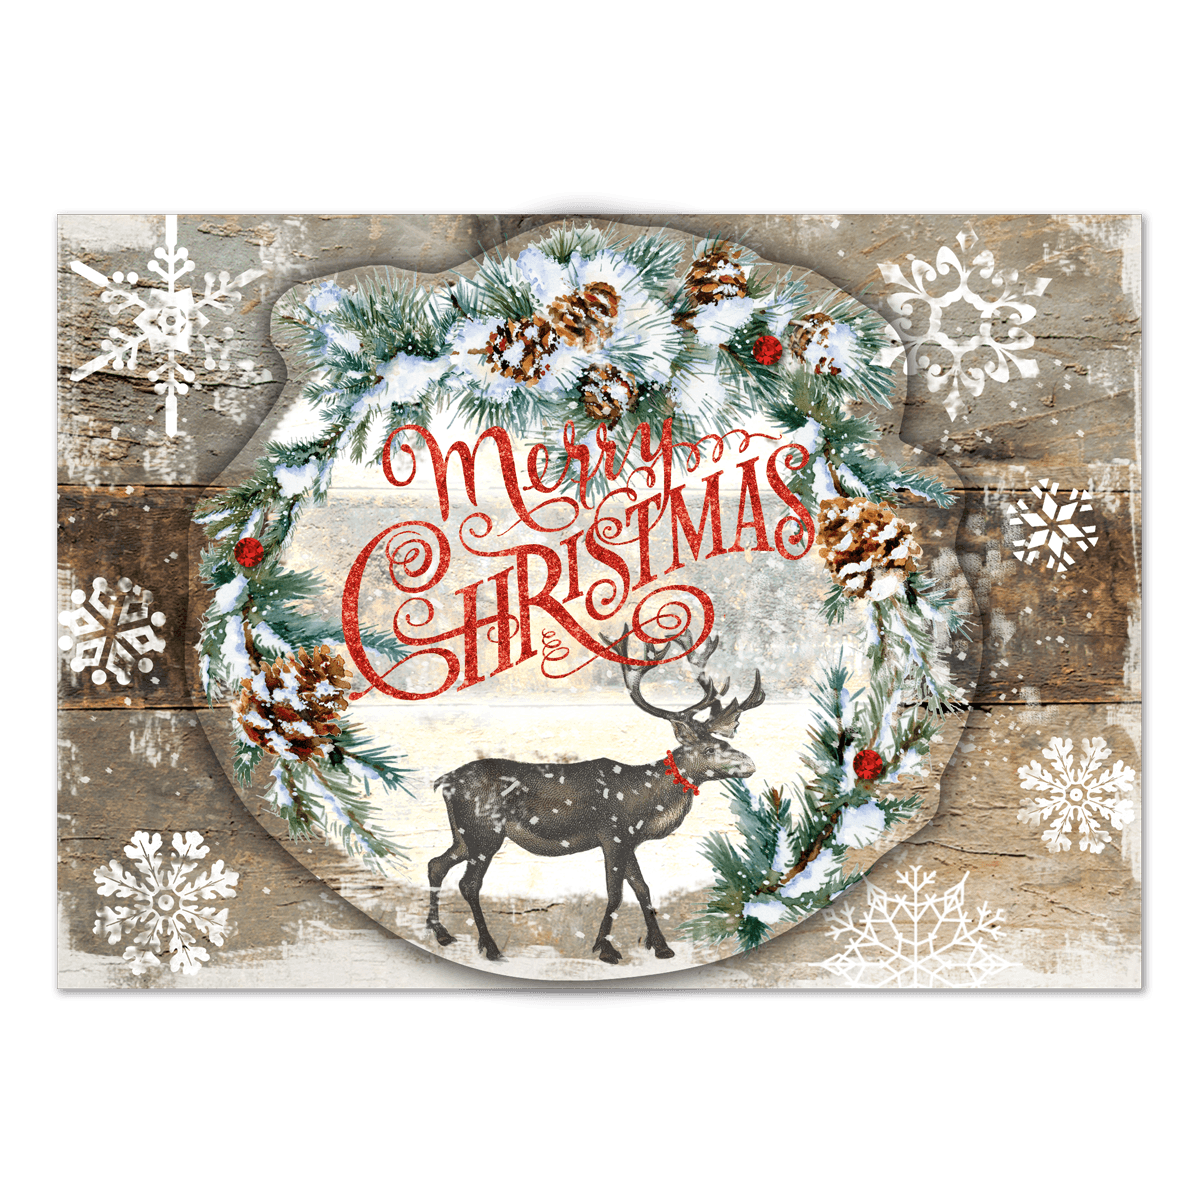 Boxed Christmas Cards With Reindeer | www.topsimages.com